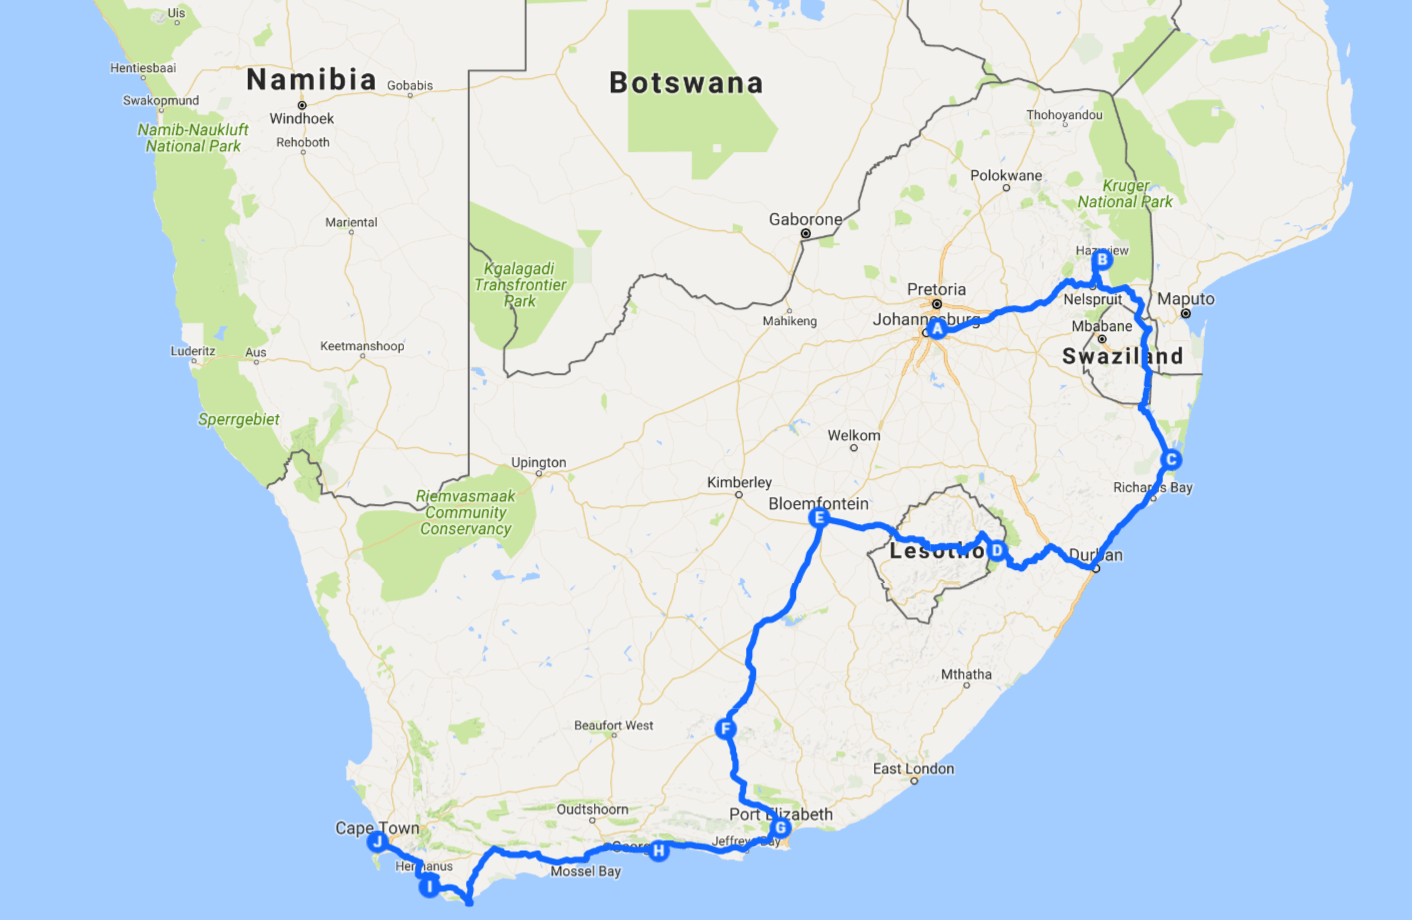 South africa road trip ultimate itinerary and route - Cape town to port elizabeth itinerary ...